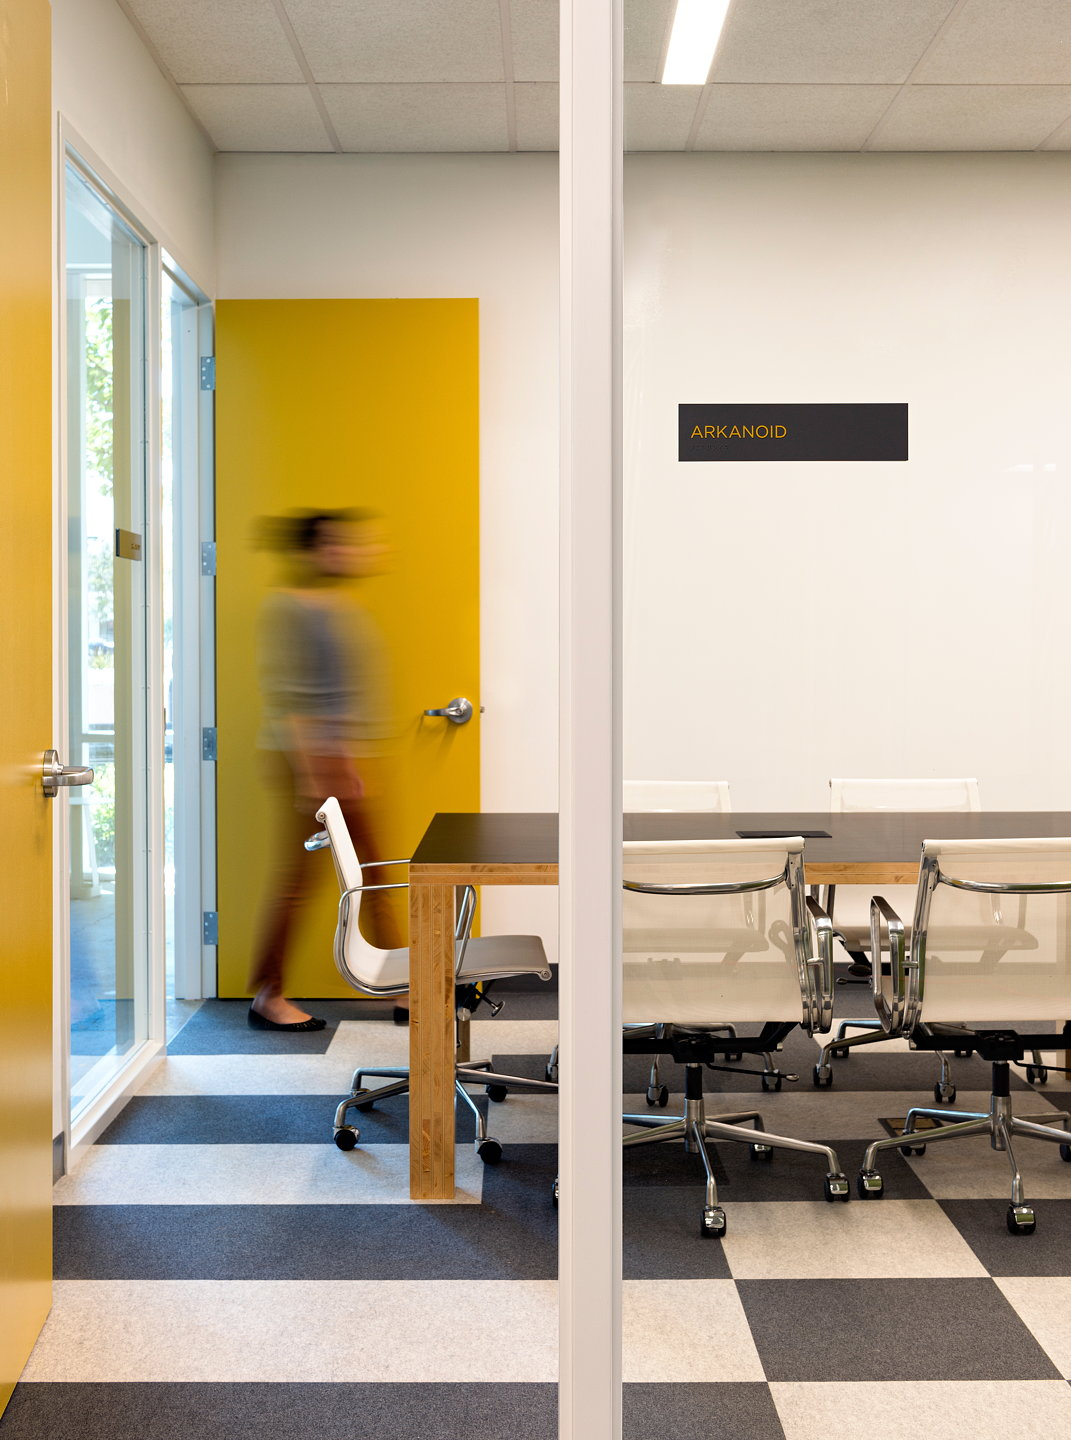 evernote office studio oa 05 mehrgan co evernote office by studio oa 09 oa designs new